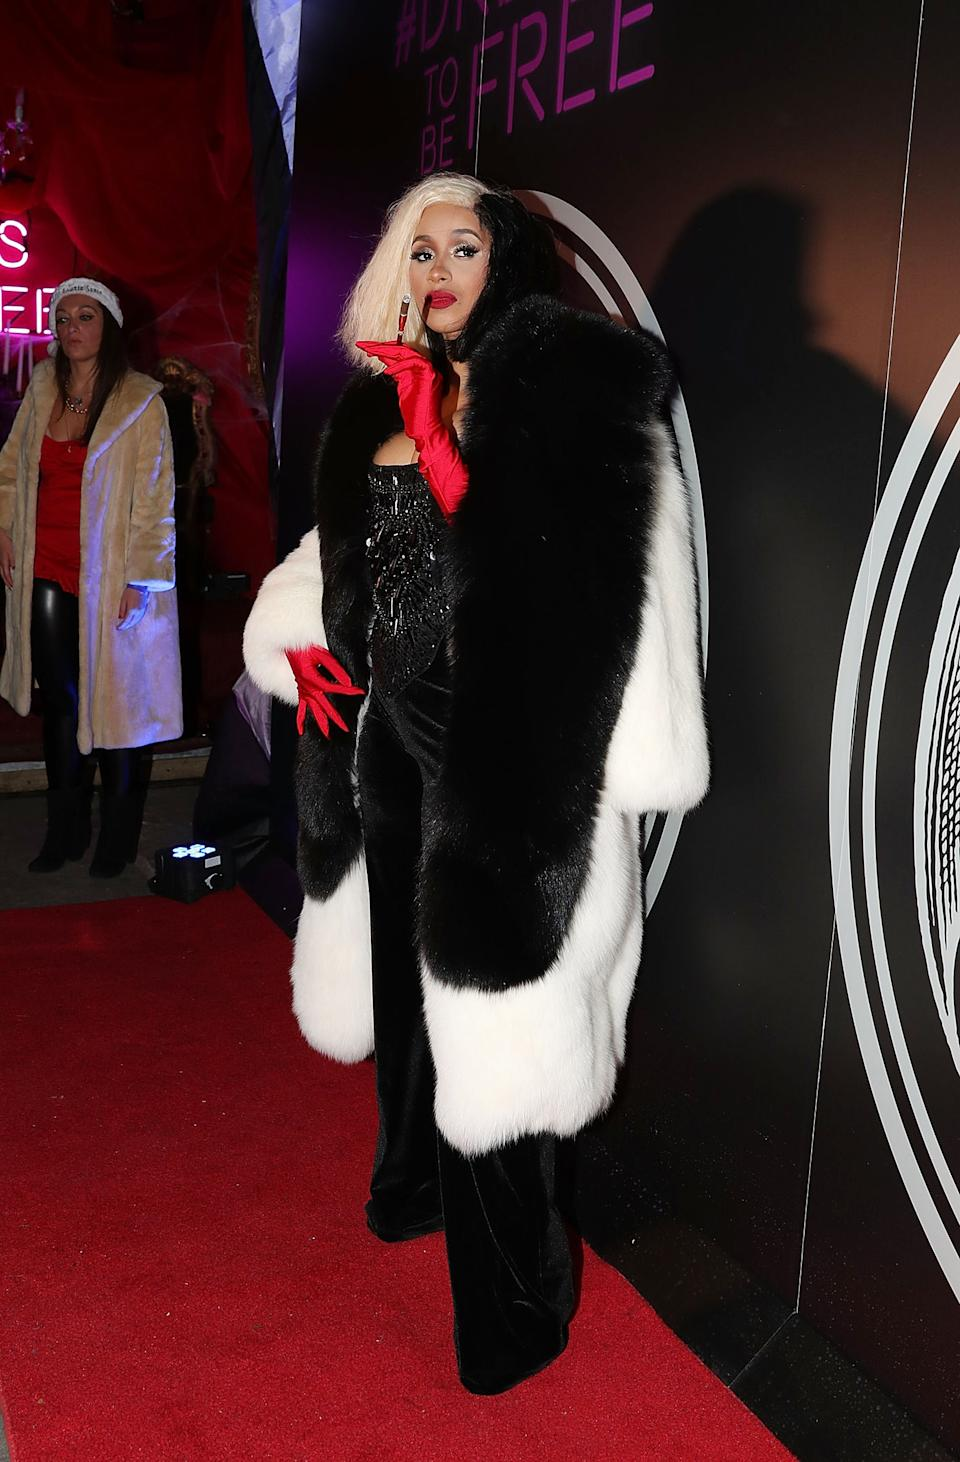 """<strong>Cardi B as Cruella de Ville</strong><br><br>She came to the red carpet with a dalmatian.<span class=""""copyright""""><a href=""""https://www.gettyimages.com/search/photographer?family=editorial&photographer=Shareif+Ziyadat"""" rel=""""nofollow noopener"""" target=""""_blank"""" data-ylk=""""slk:Shareif Ziyadat"""" class=""""link rapid-noclick-resp"""">Shareif Ziyadat</a> / Contributor</span>"""